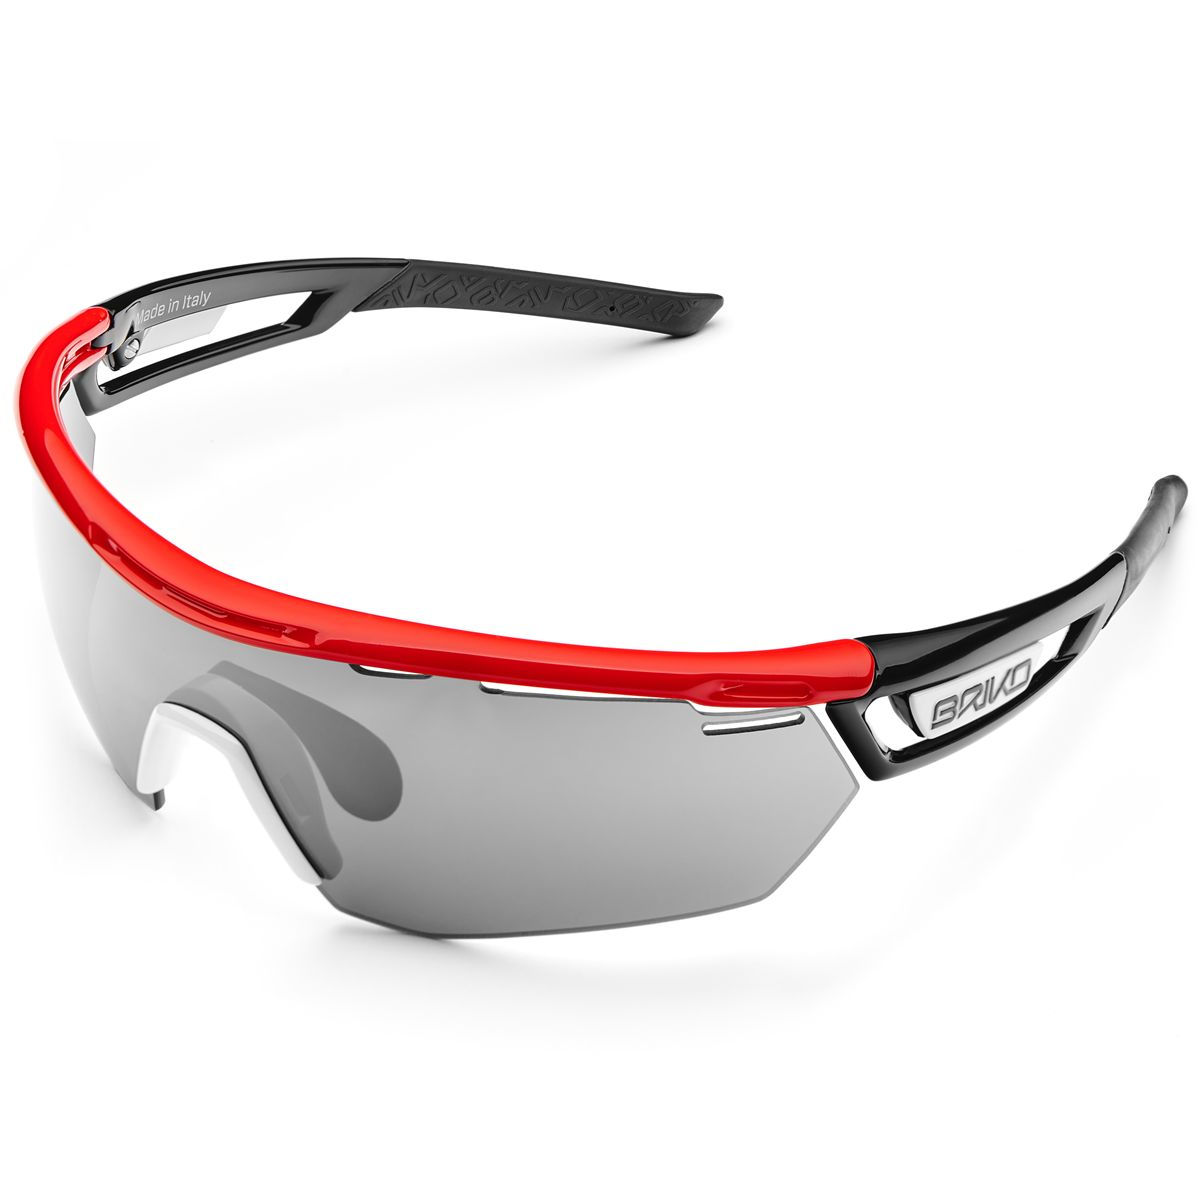 Briko GLASSES CYCLOPE 2 LENSES Man Woman Cycling sport Sunglasses